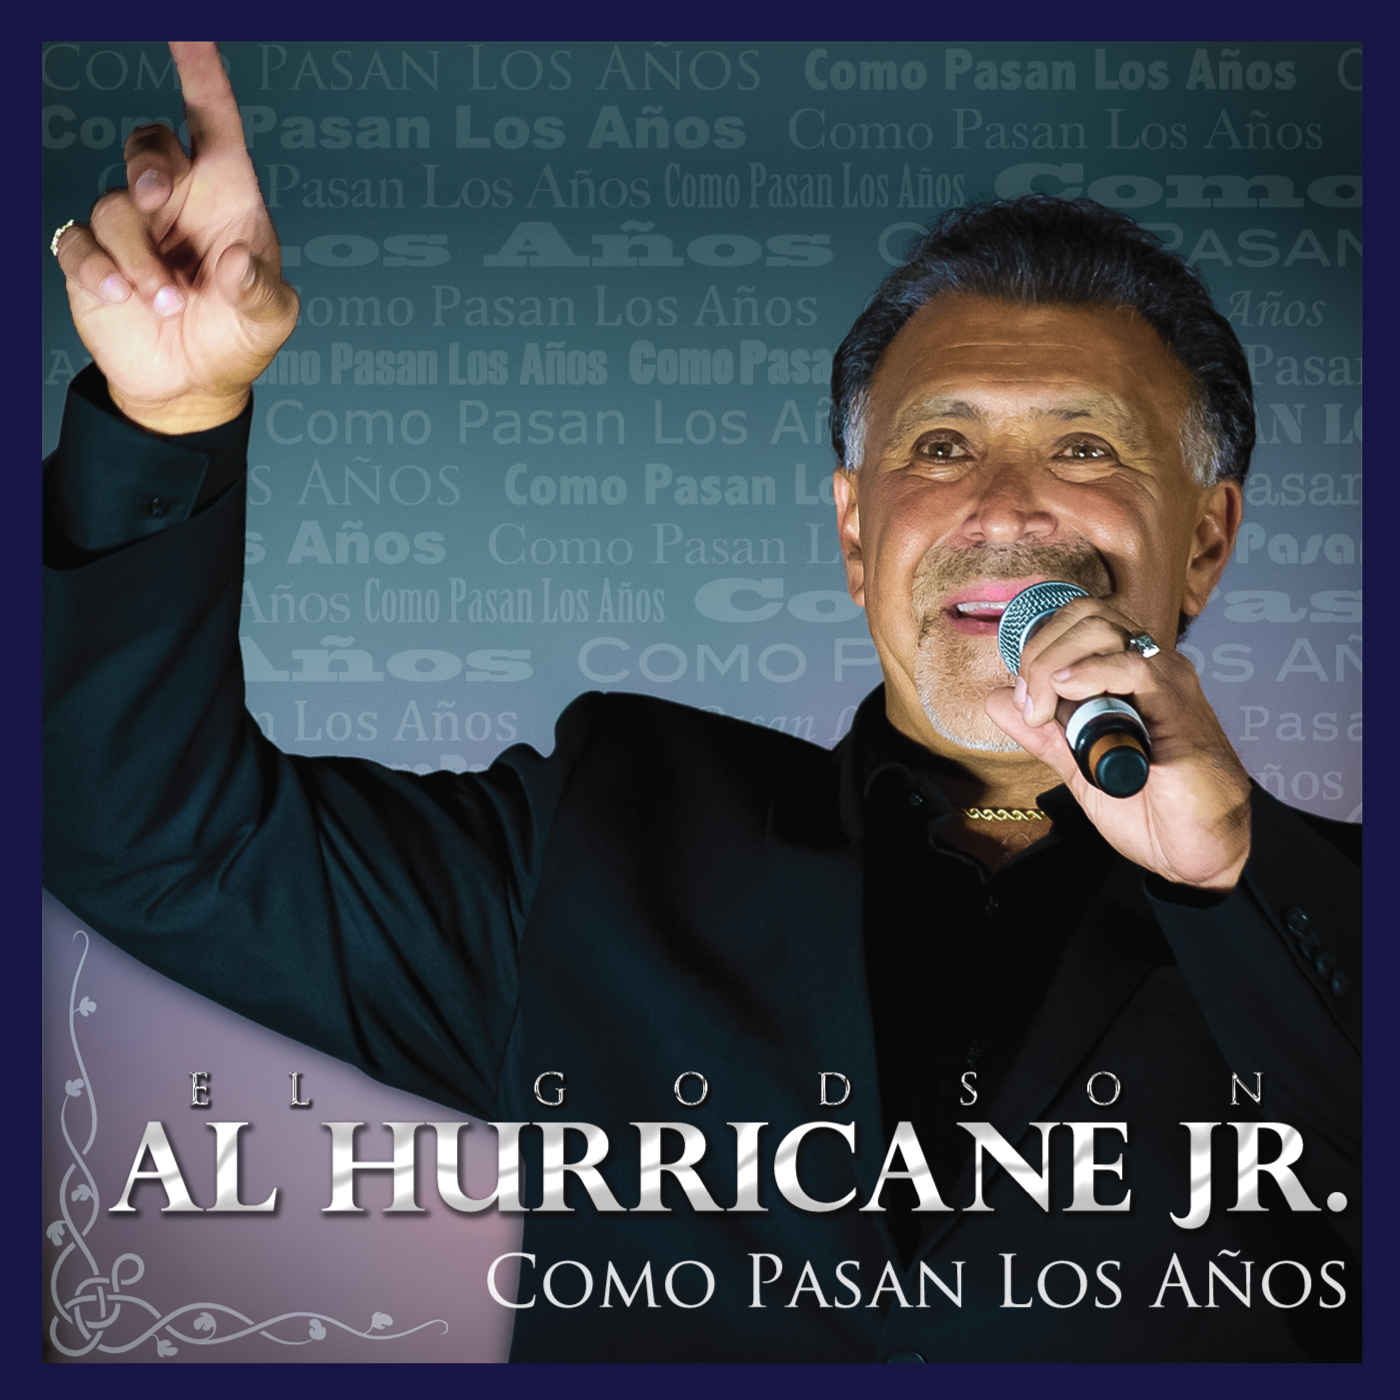 Al Hurricane Jr